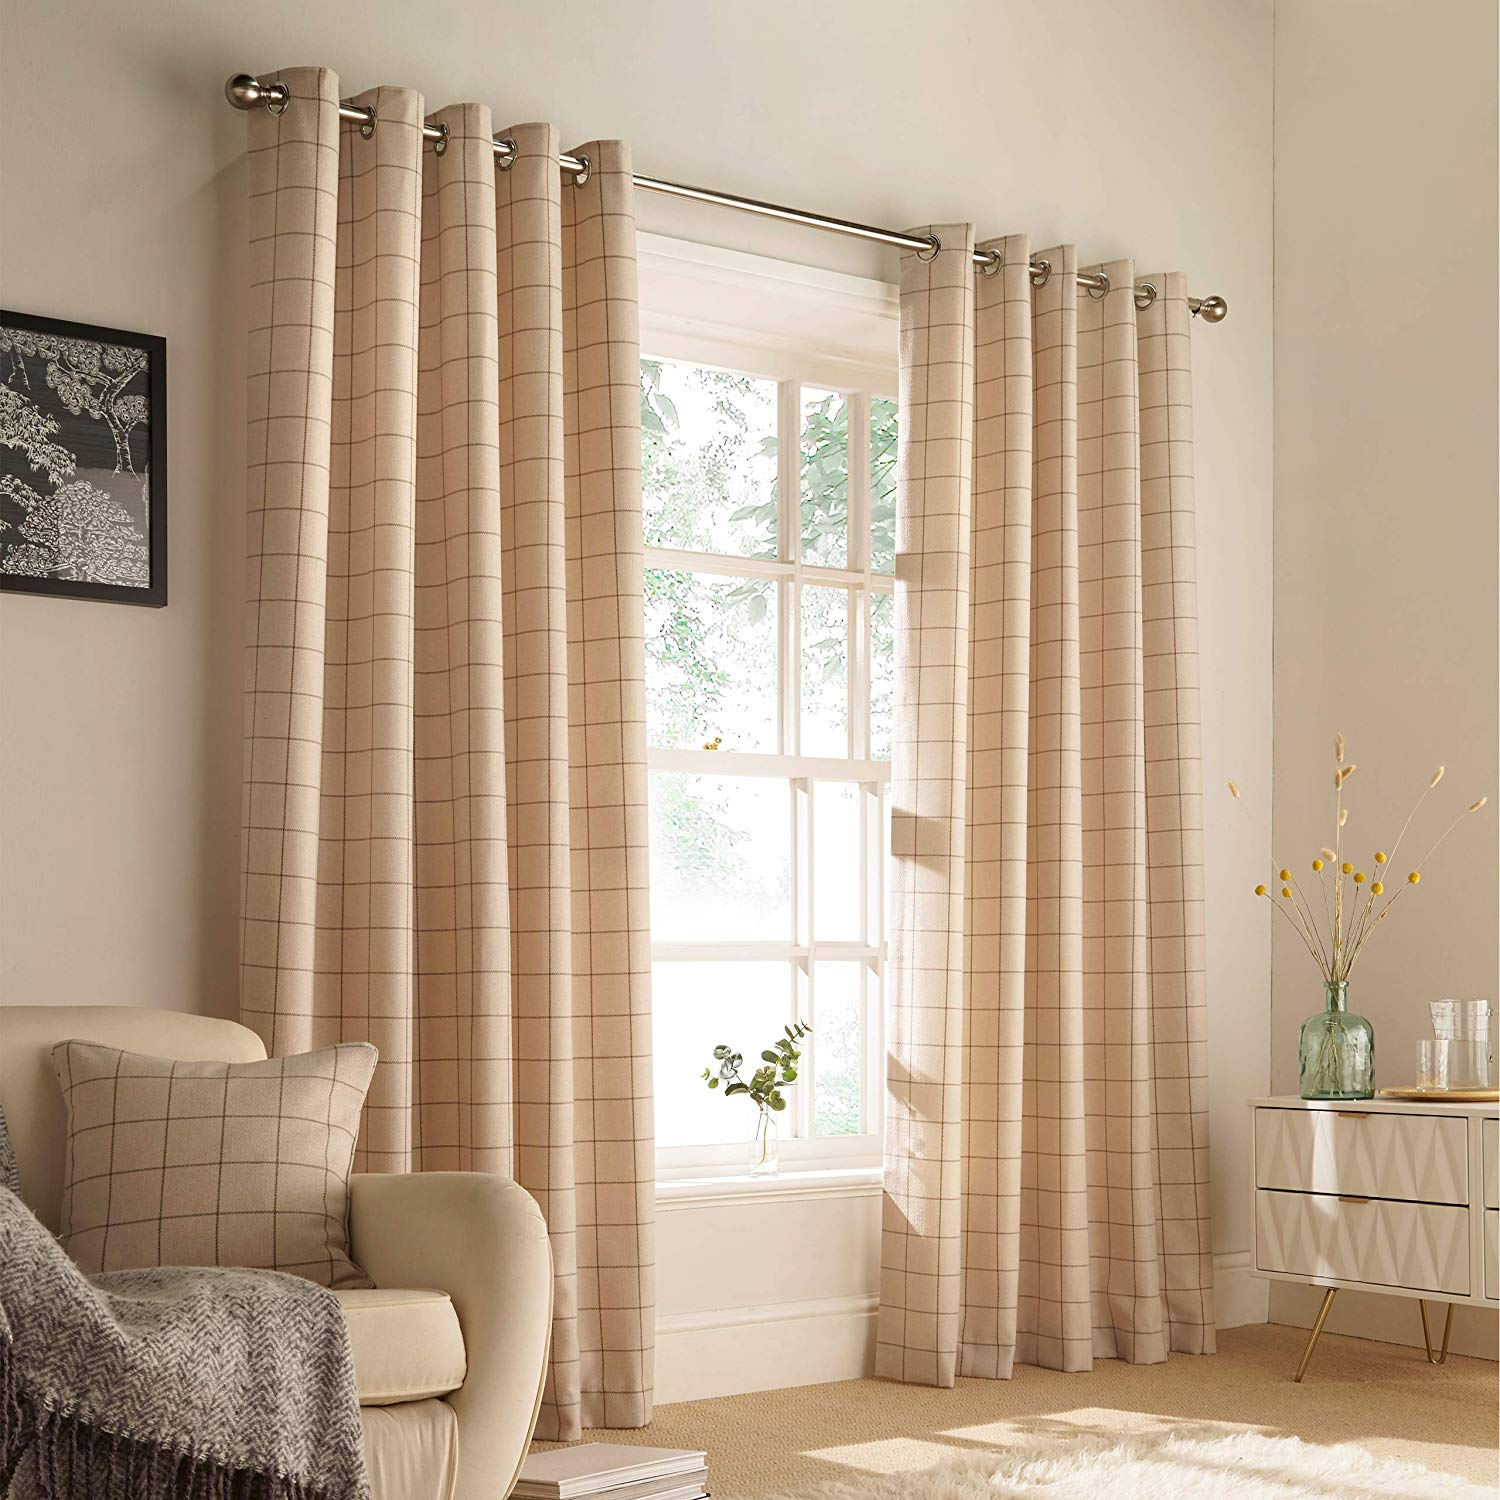 The Home Furnishings Company Ellis Natural Windowpane Curtains and Cushion